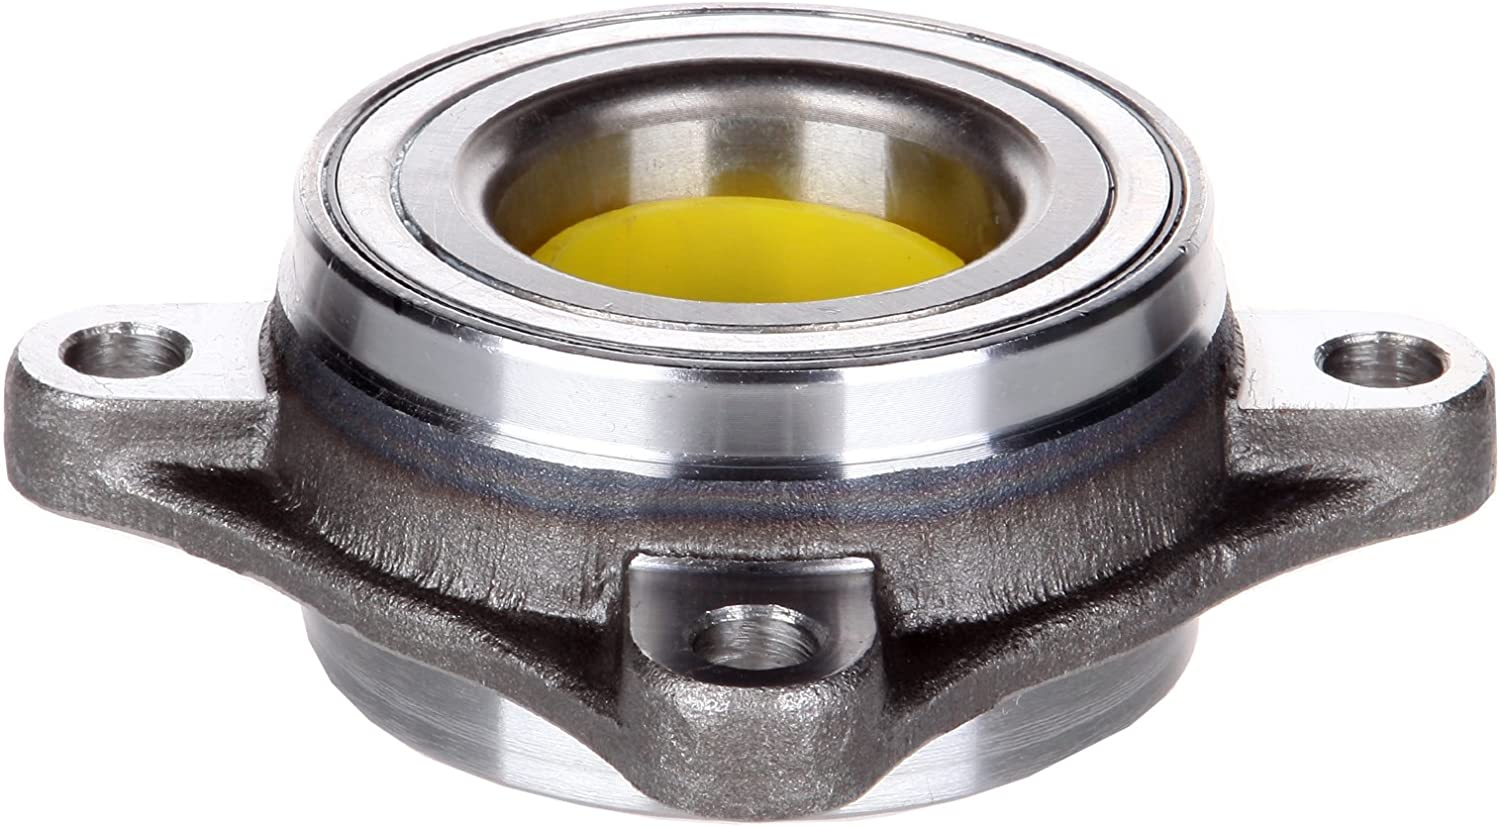 SCITOO Front Wheel Bearing Assembly Hub Max 44% OFF 2003-2018 Toy 515040 Max 70% OFF for